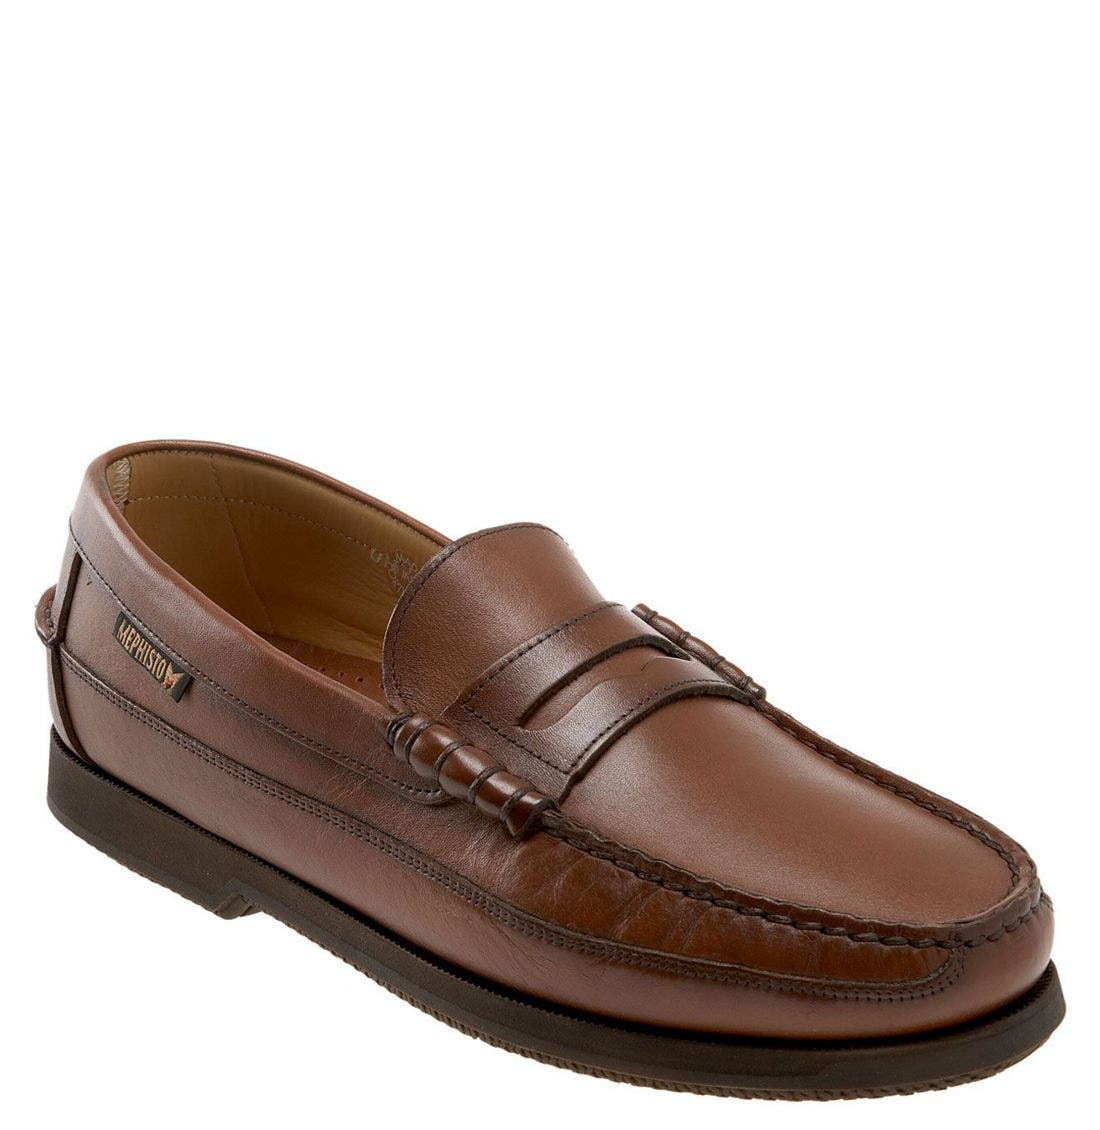 'Cap Vert' Penny Loafer,                             Main thumbnail 1, color,                             Rust Leather